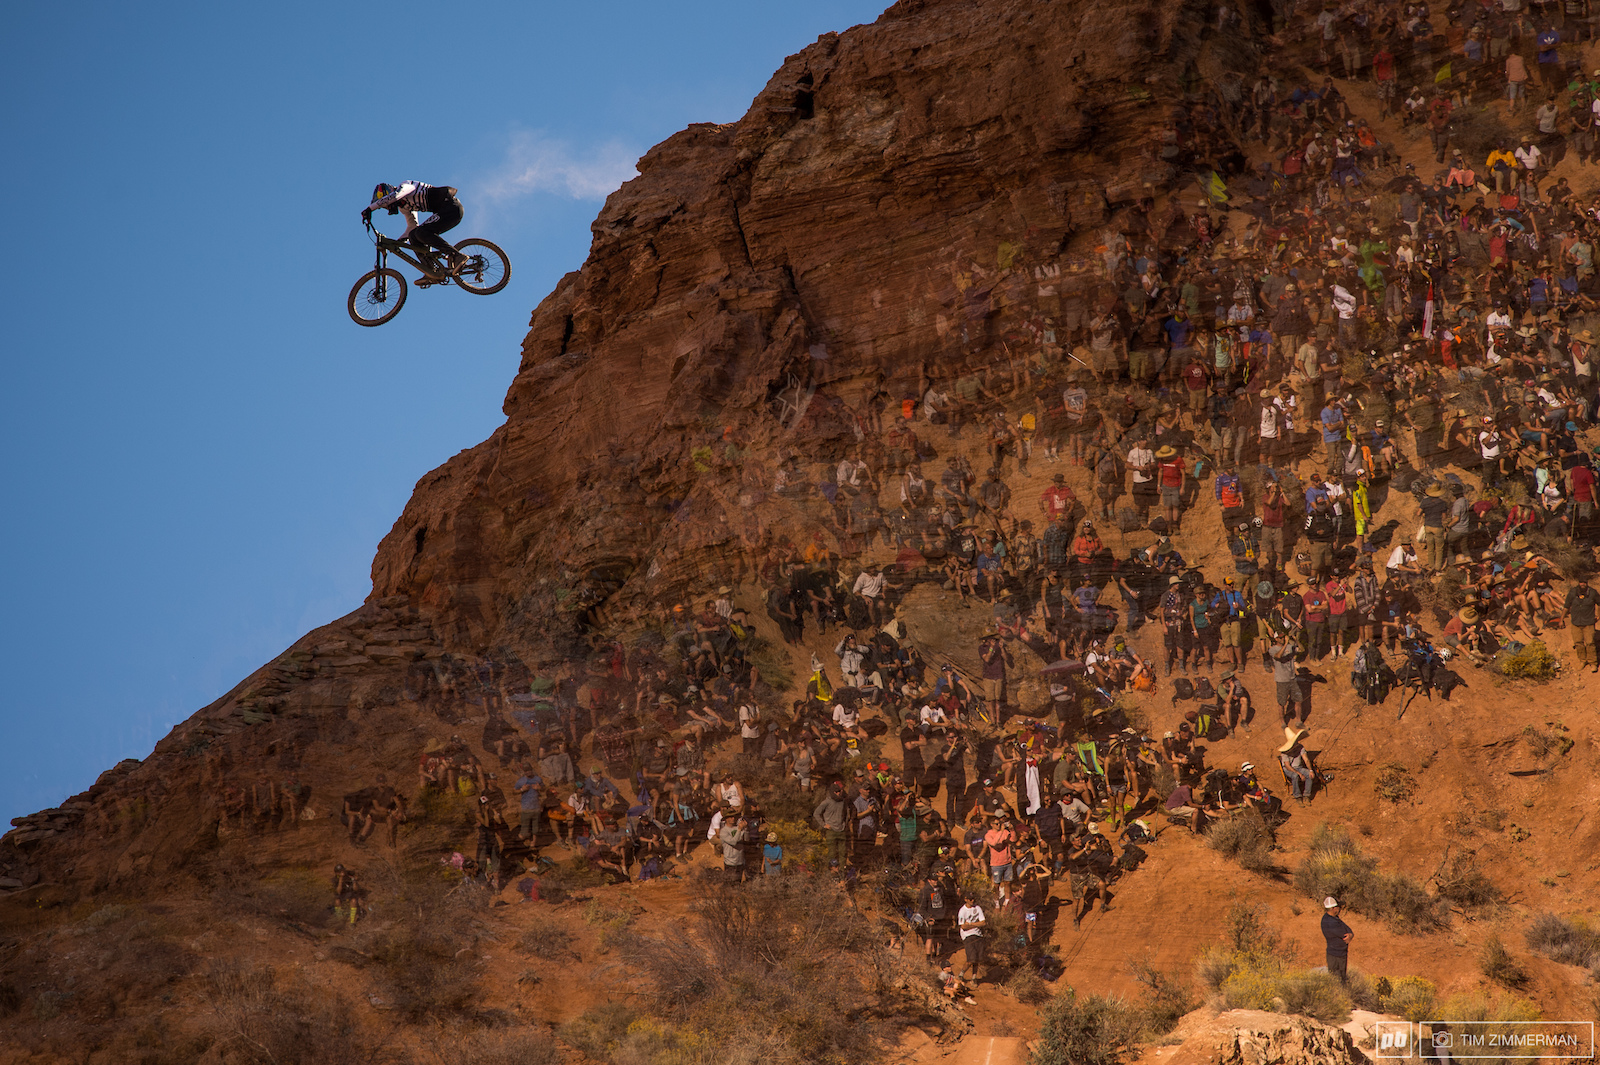 The crowds were on-hand to see if Semenuk would be able to hang onto his crown and become the first rider to secure three Rampage victories. Unfortunately this was not his year.